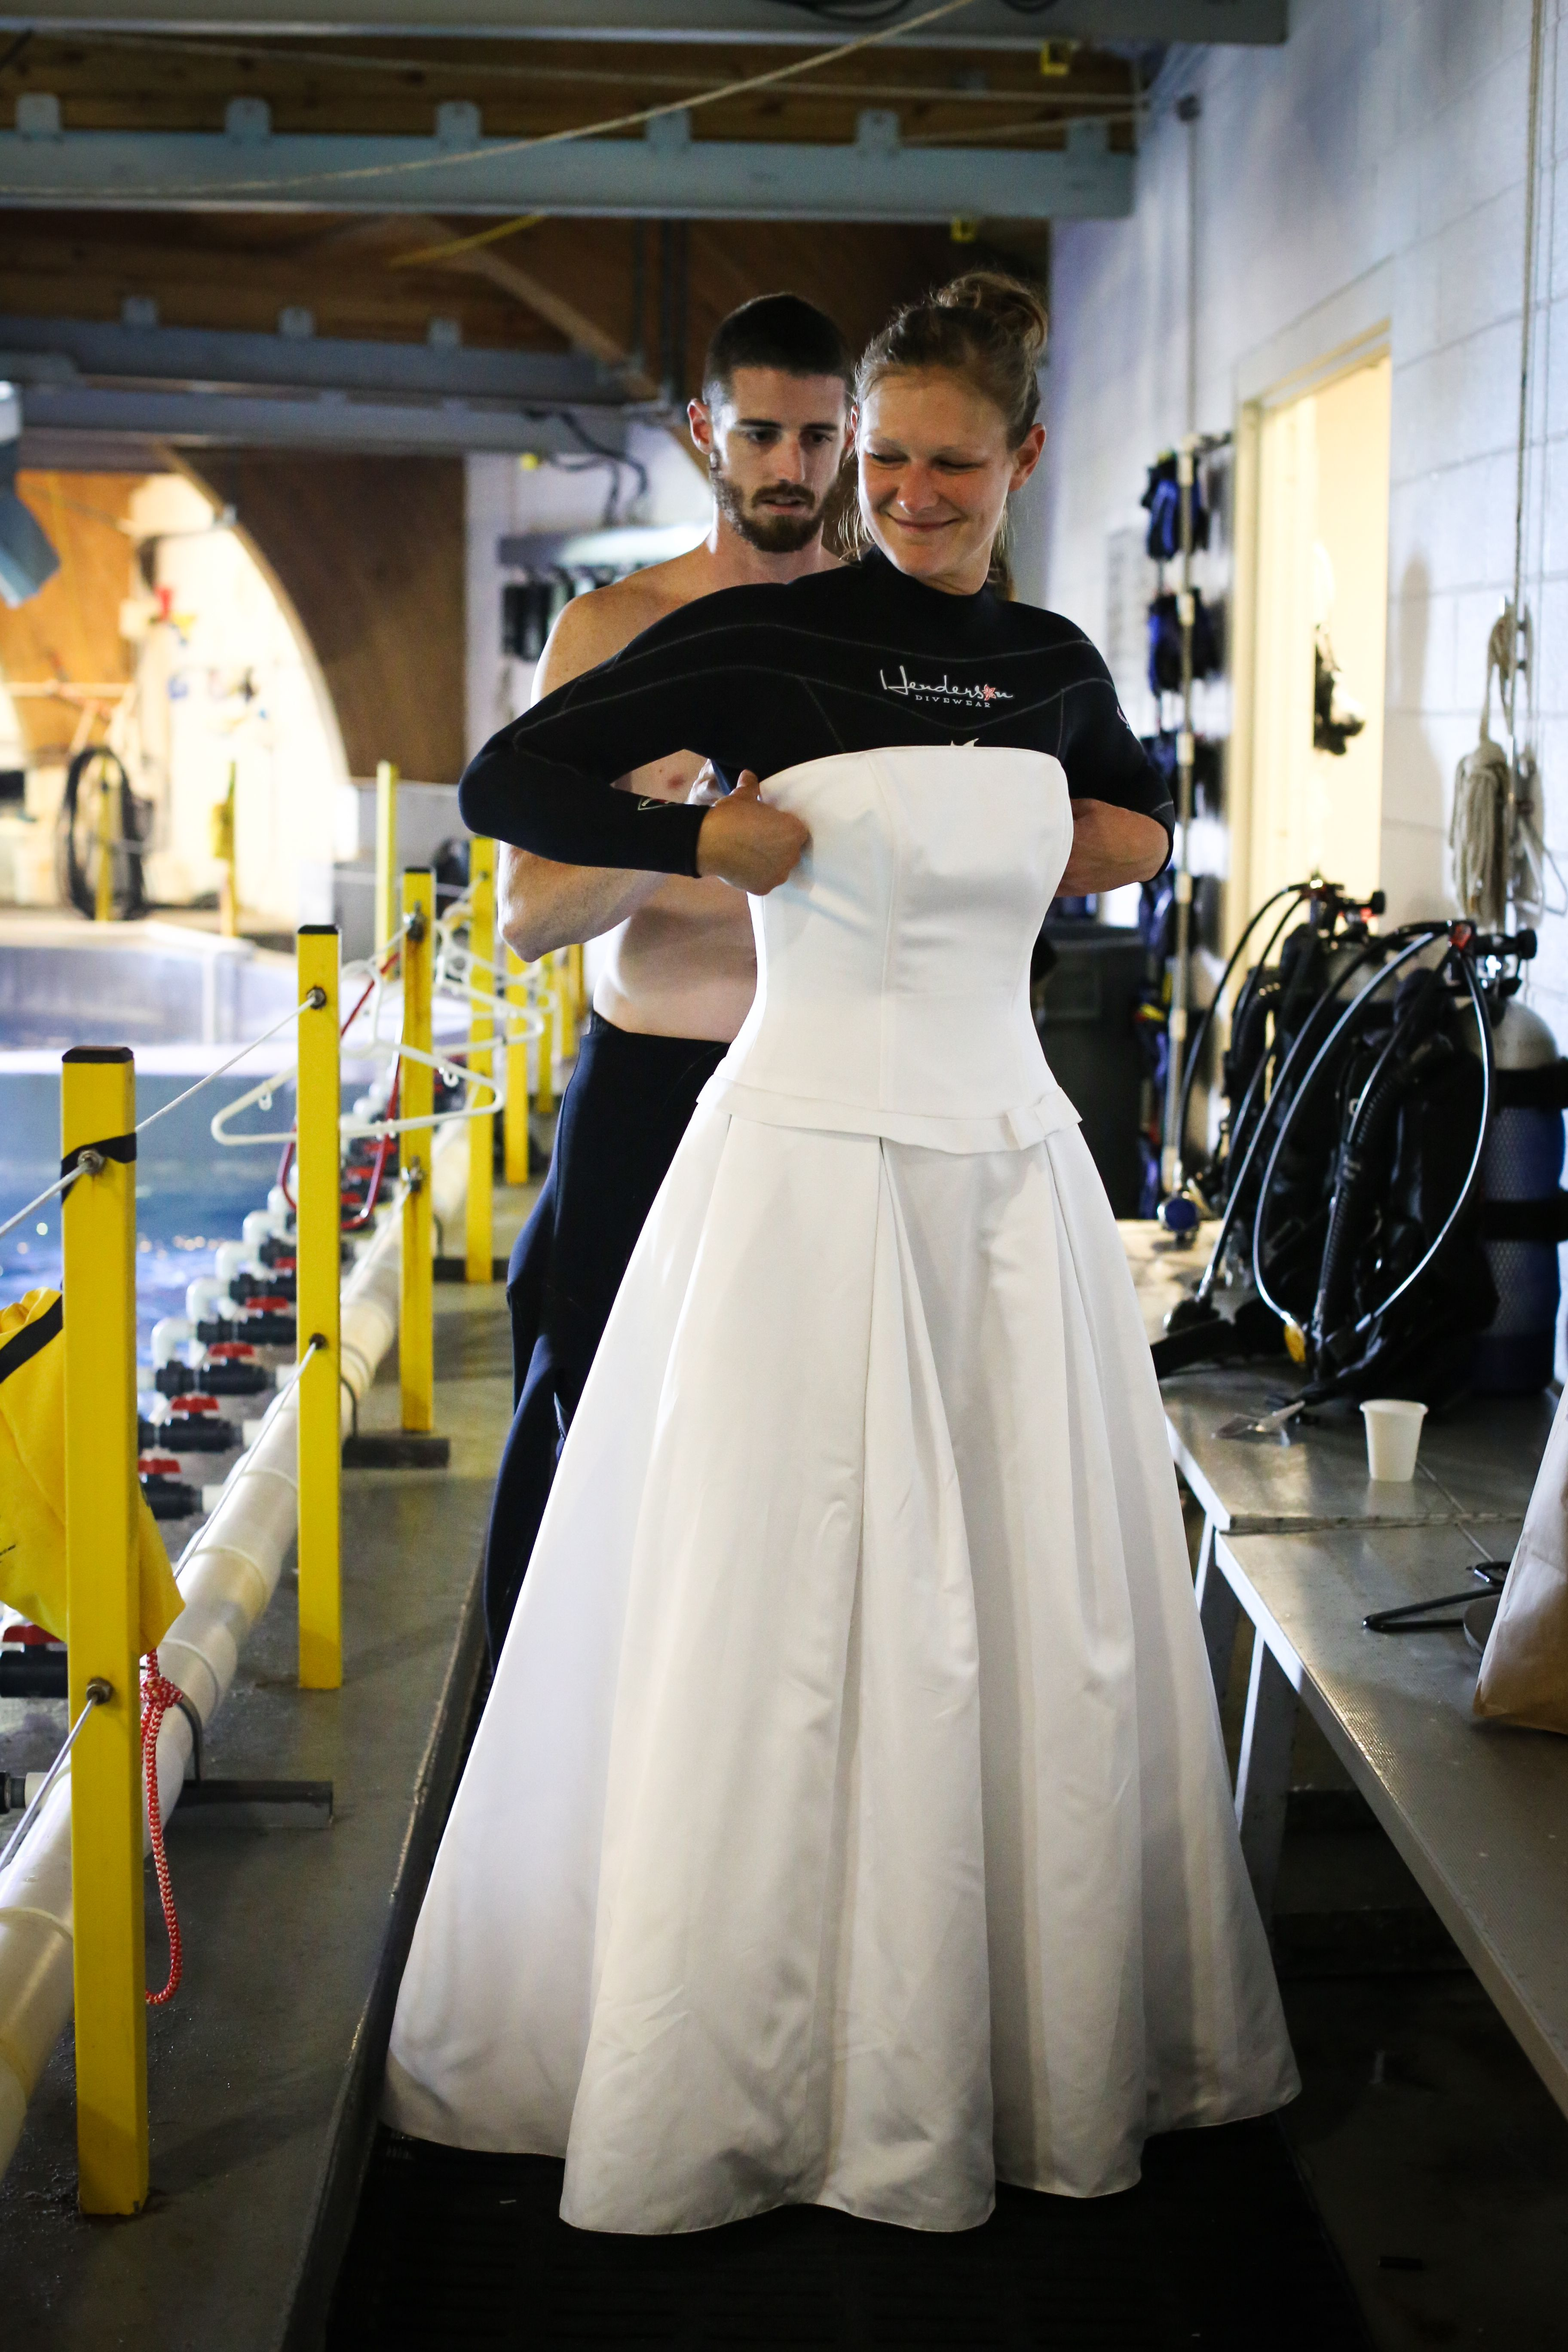 What does a bride wear when getting married in a shark